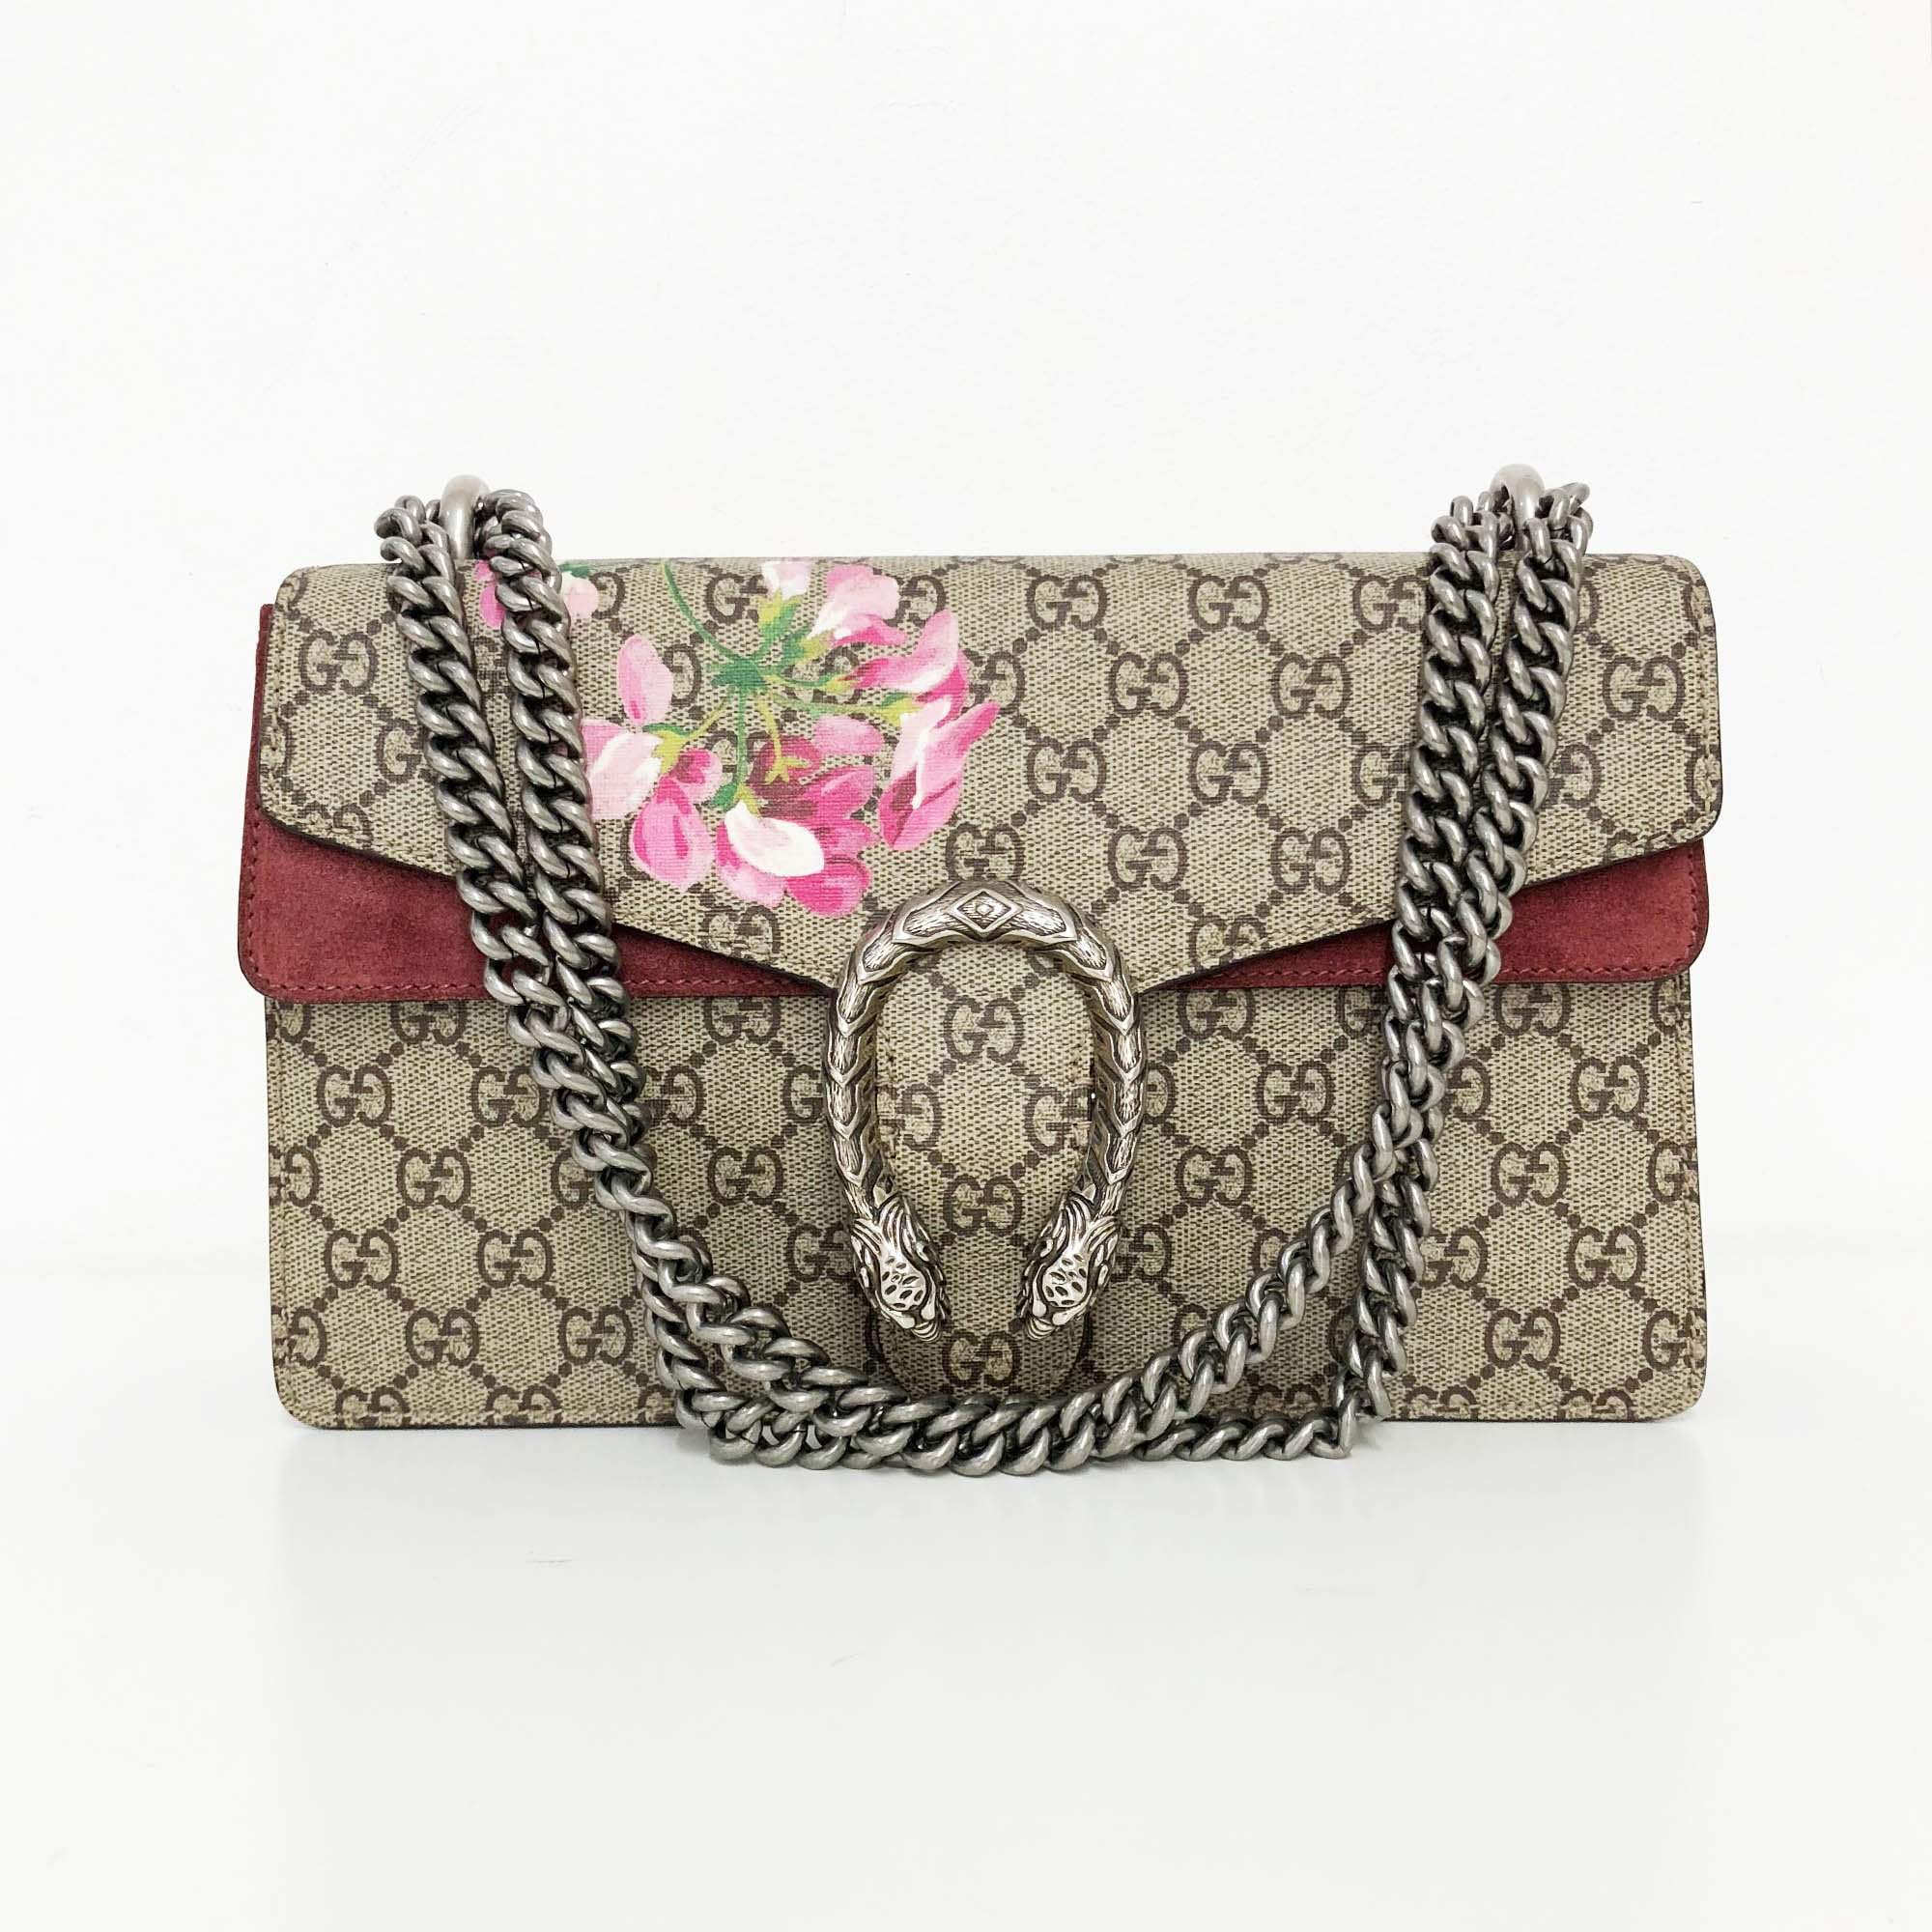 17da9d389755 Gucci Dionysus Small GG Blooms shoulder bag – Garderobe